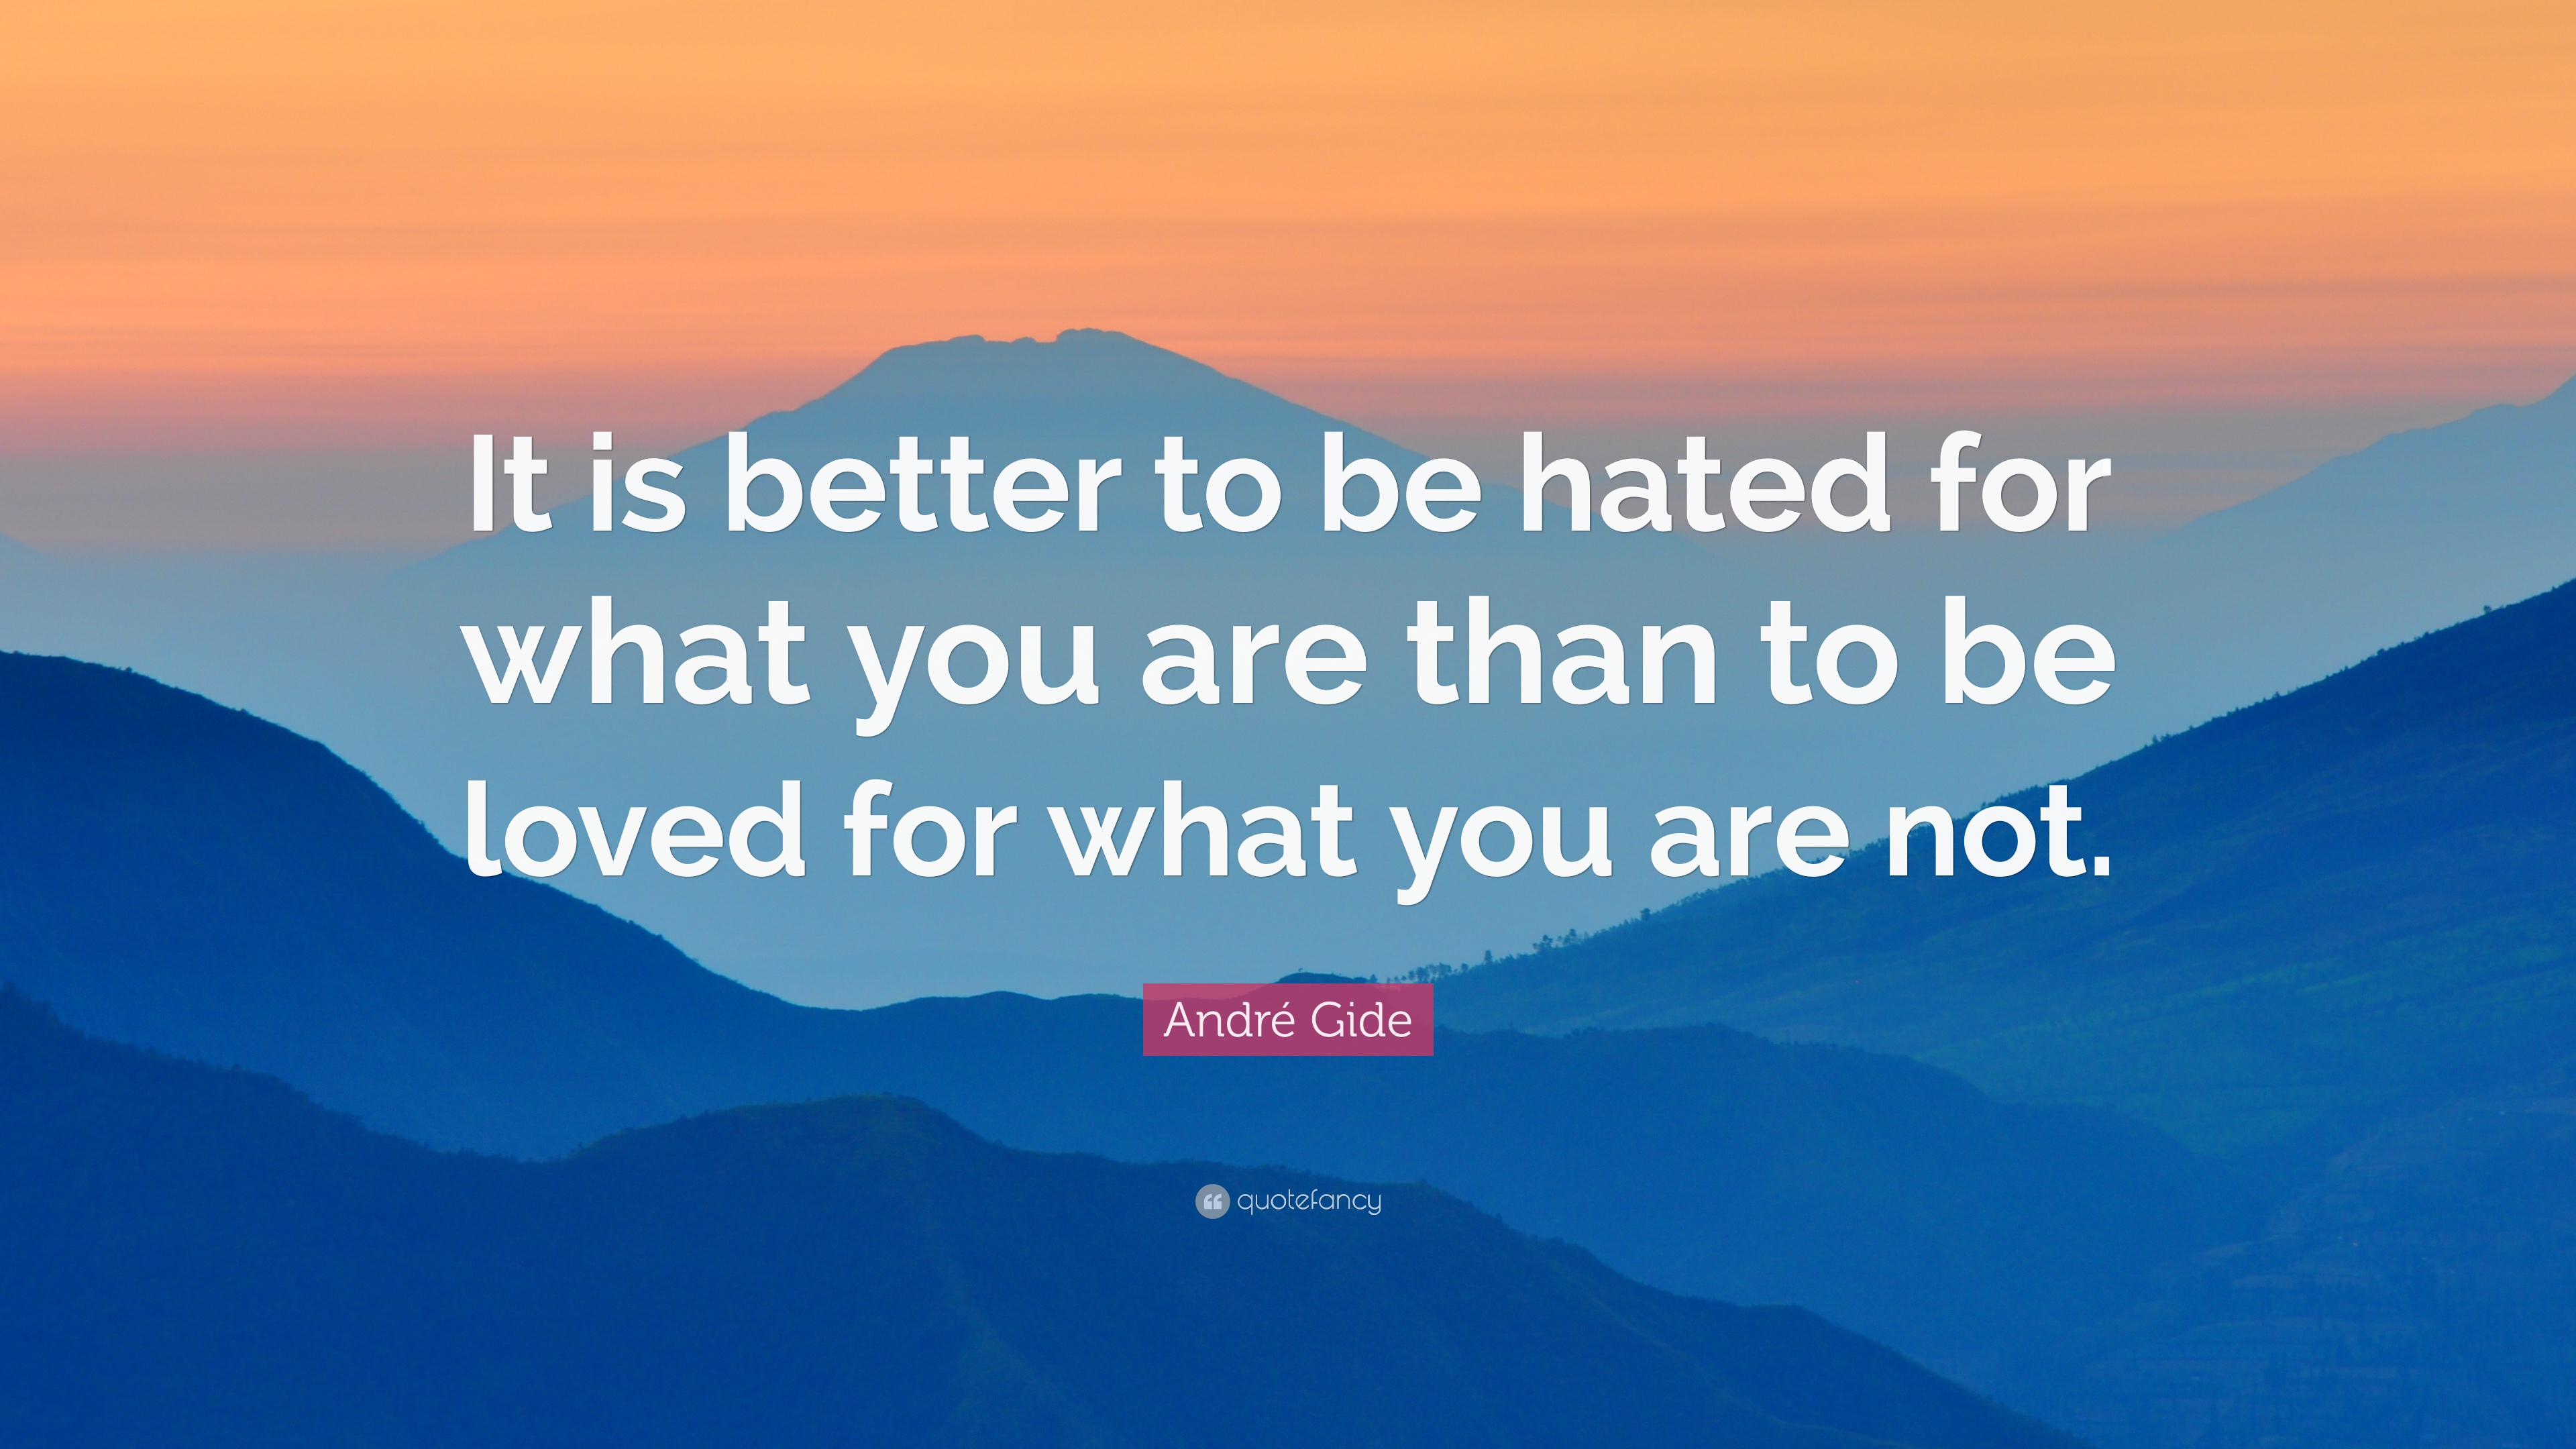 It Is Better To Be Hated For What You Are Than Loved For